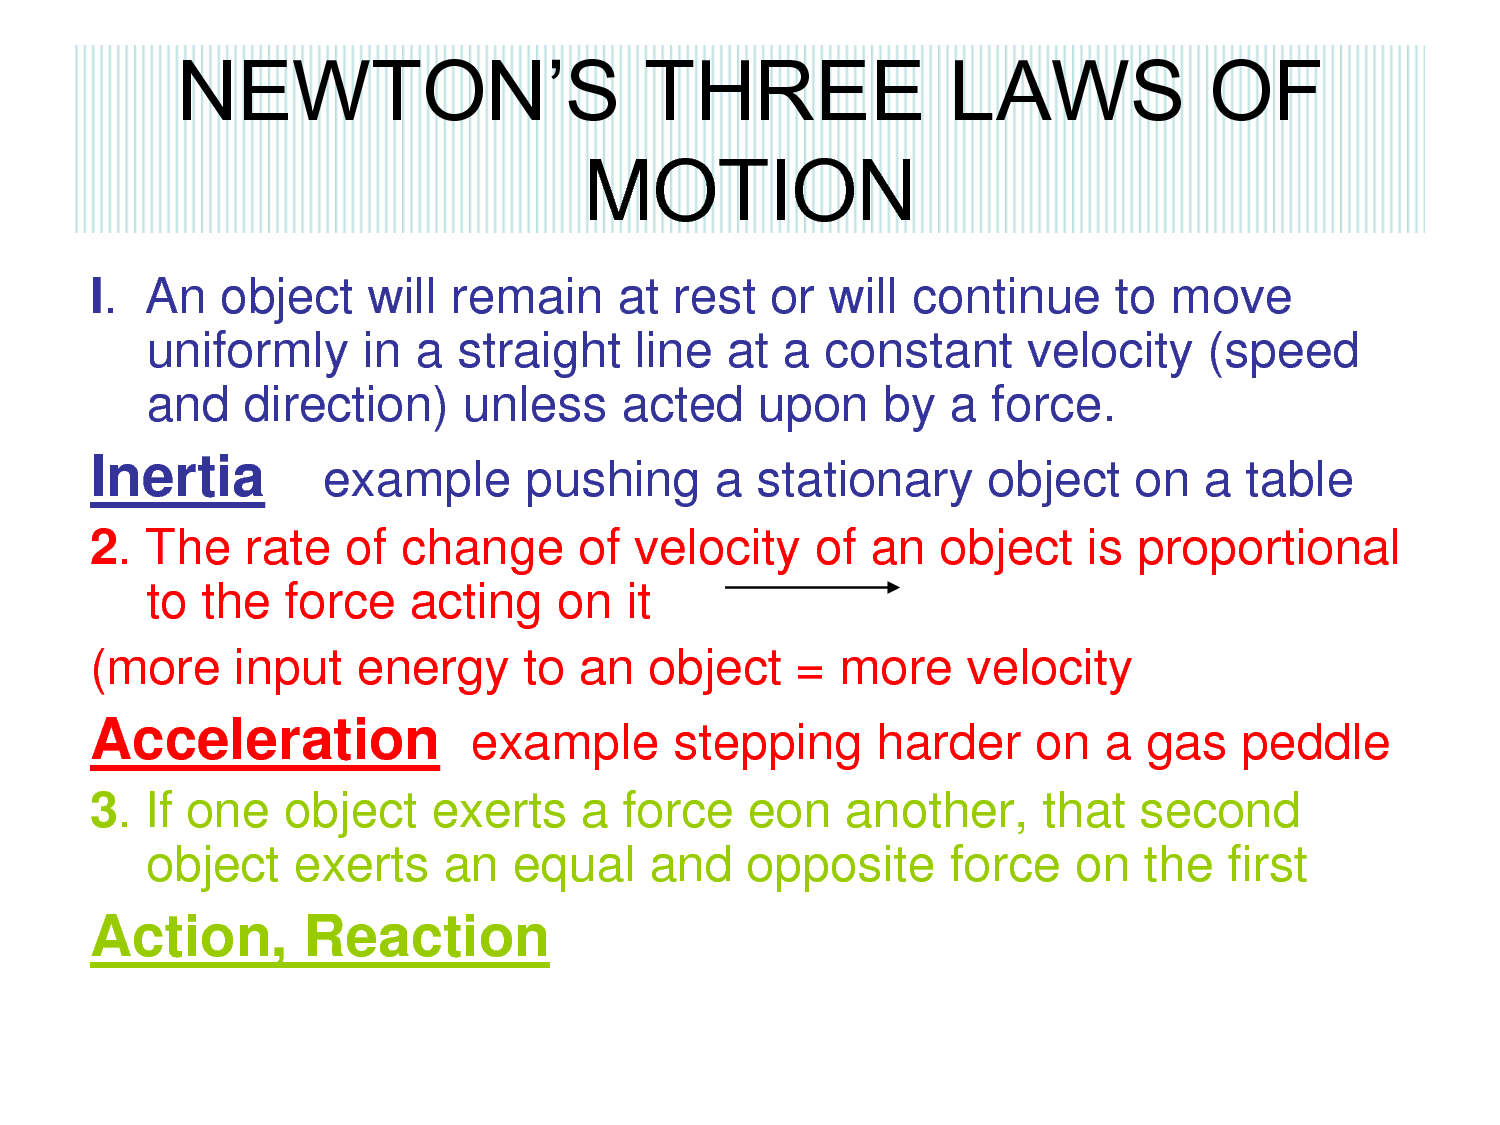 Three Laws of Motion by Sir Isaac Newton | Law, Isaac newton and ...